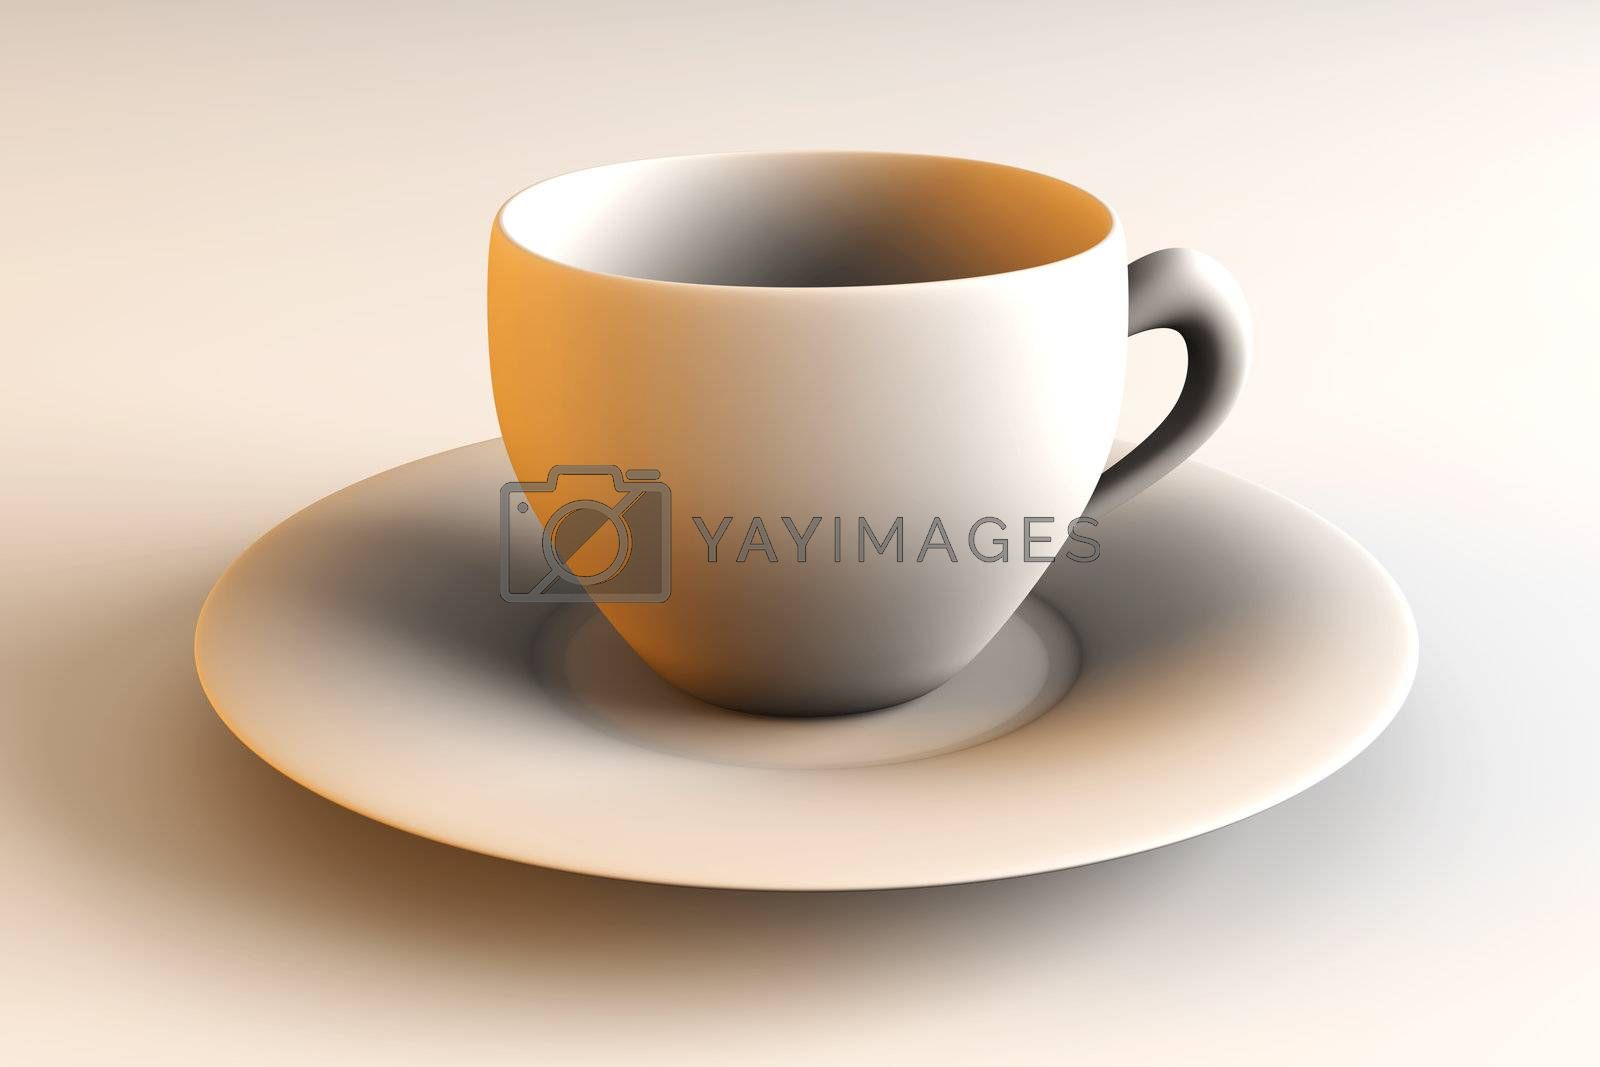 3D rendered Illustration. A red coffee or tea cup.